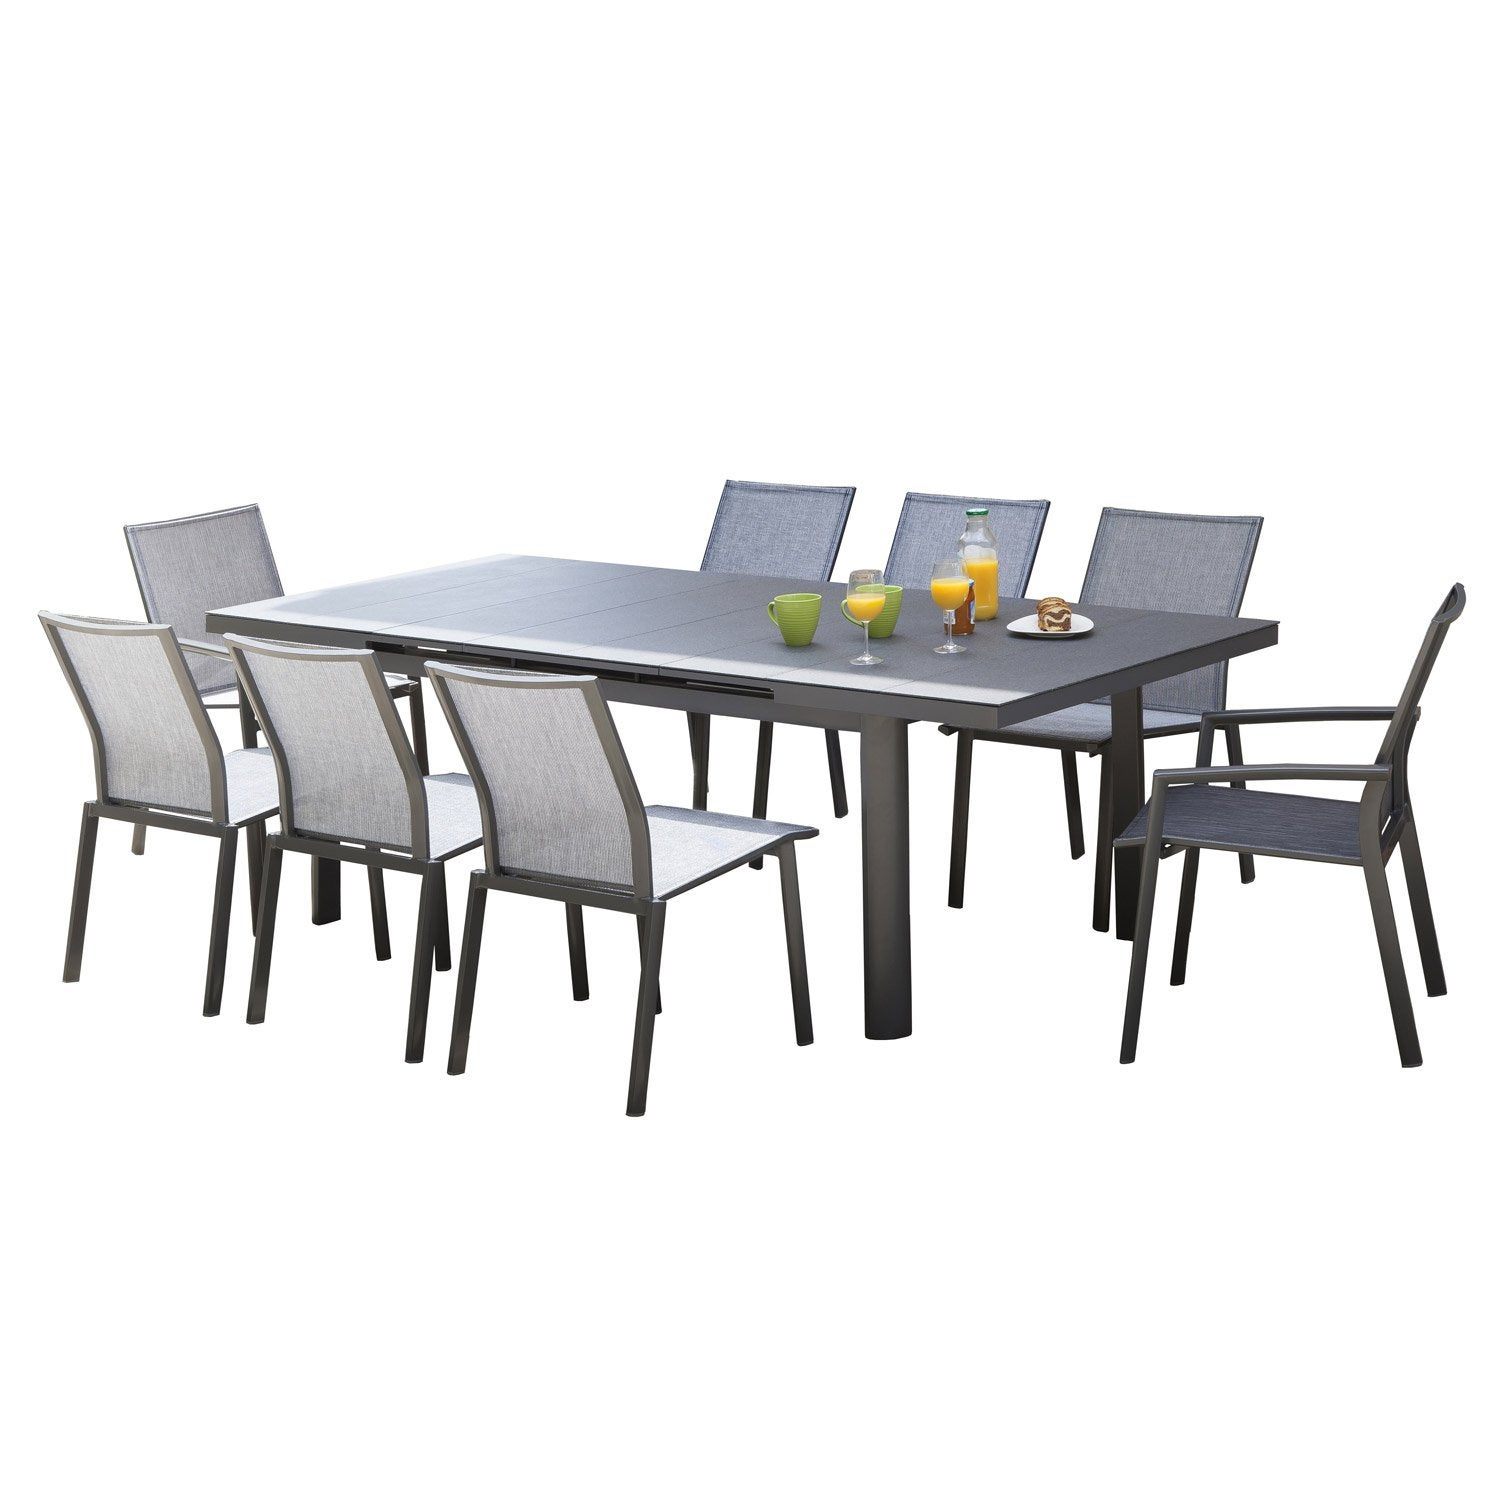 Table de jardin bora rectangulaire gris 8 personnes for La table de 8